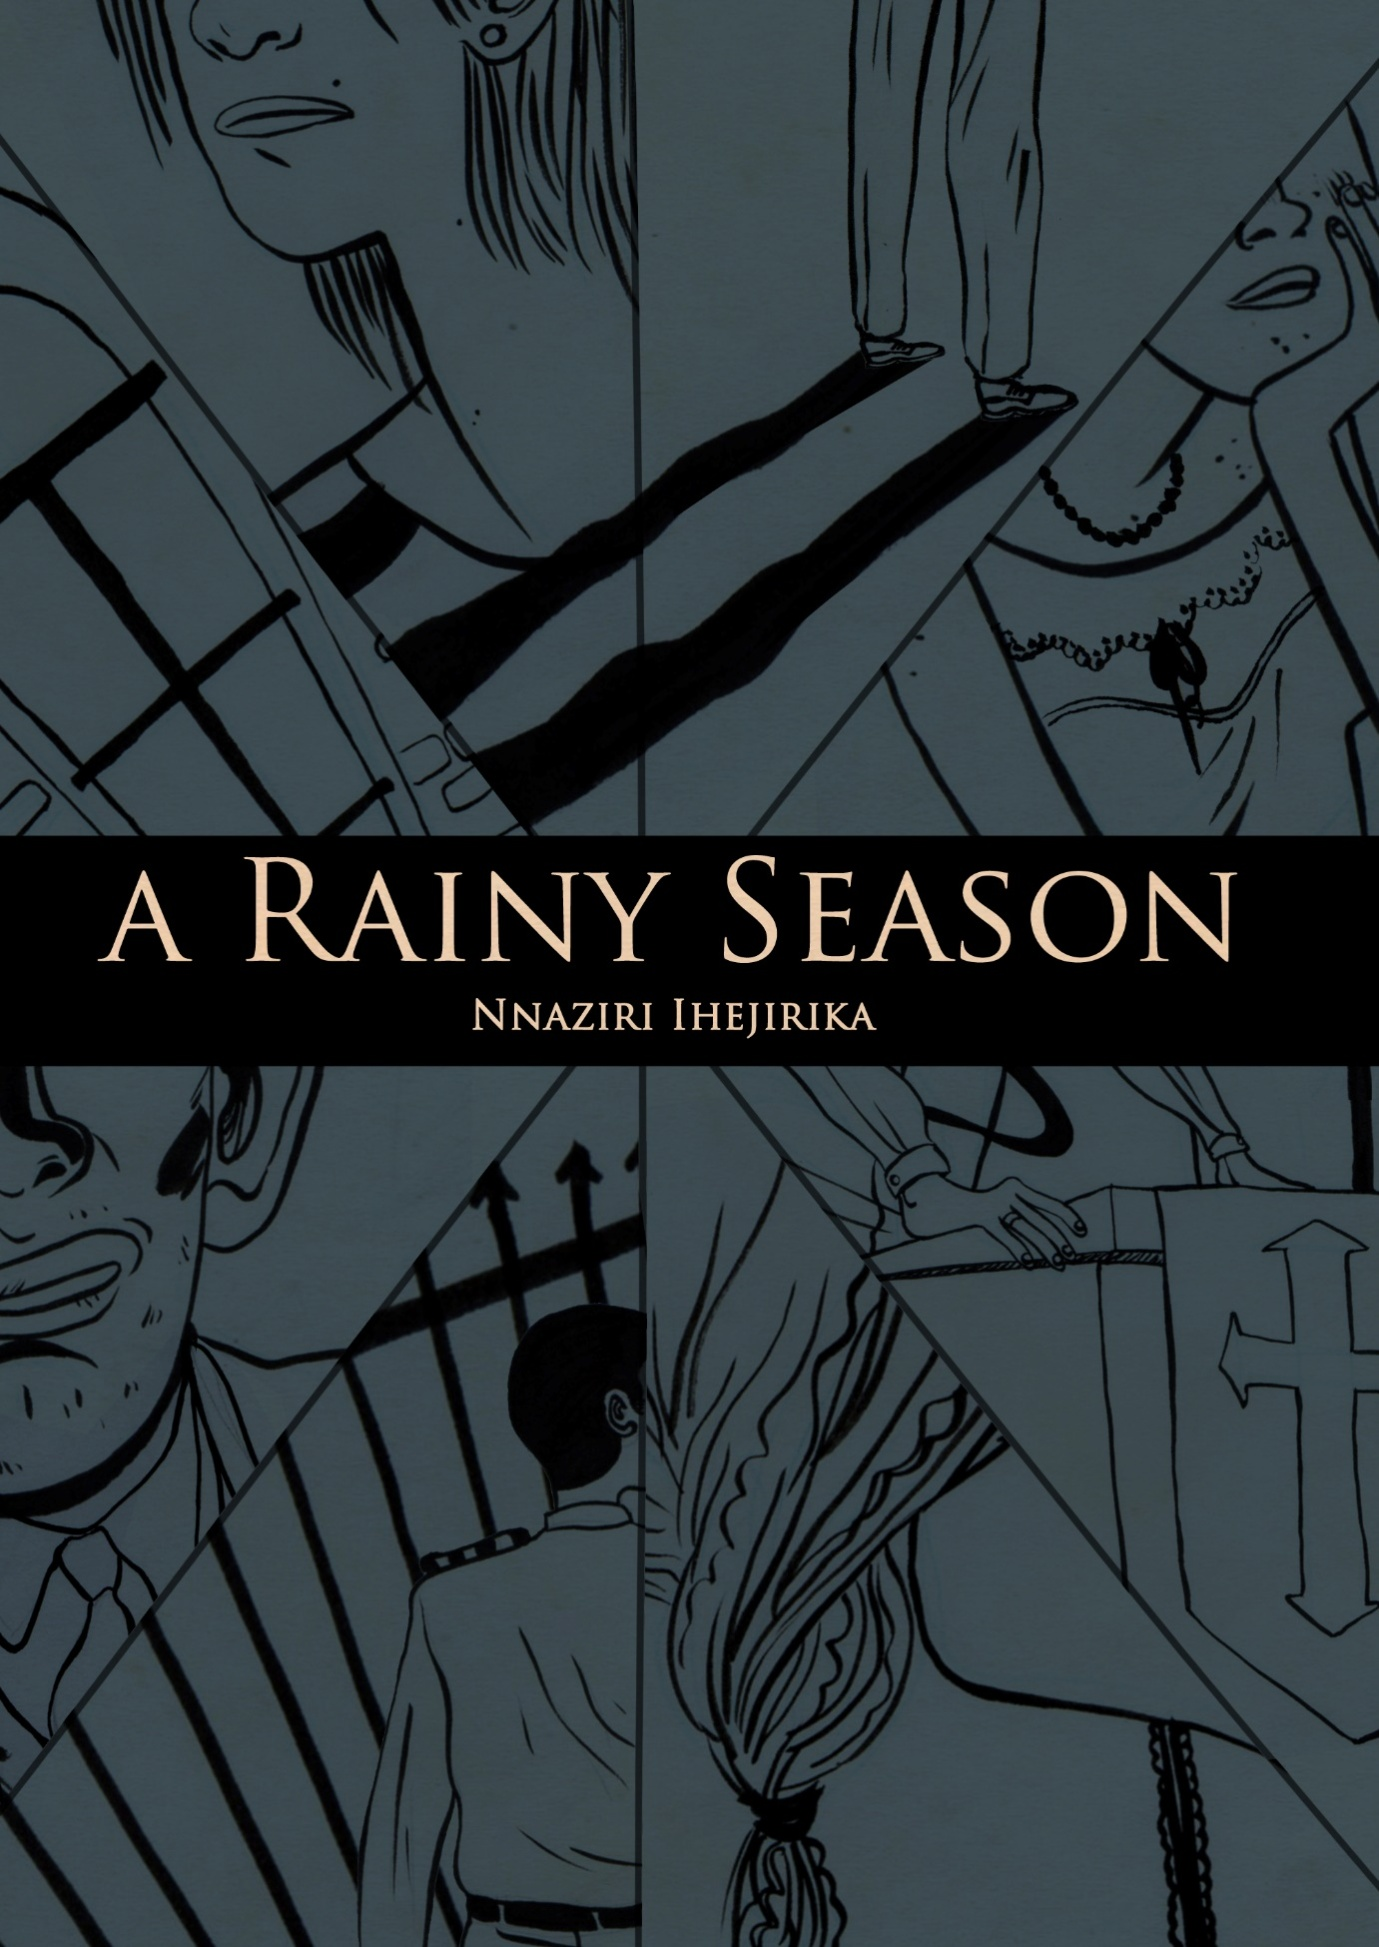 01_A Rainy Season_Cover